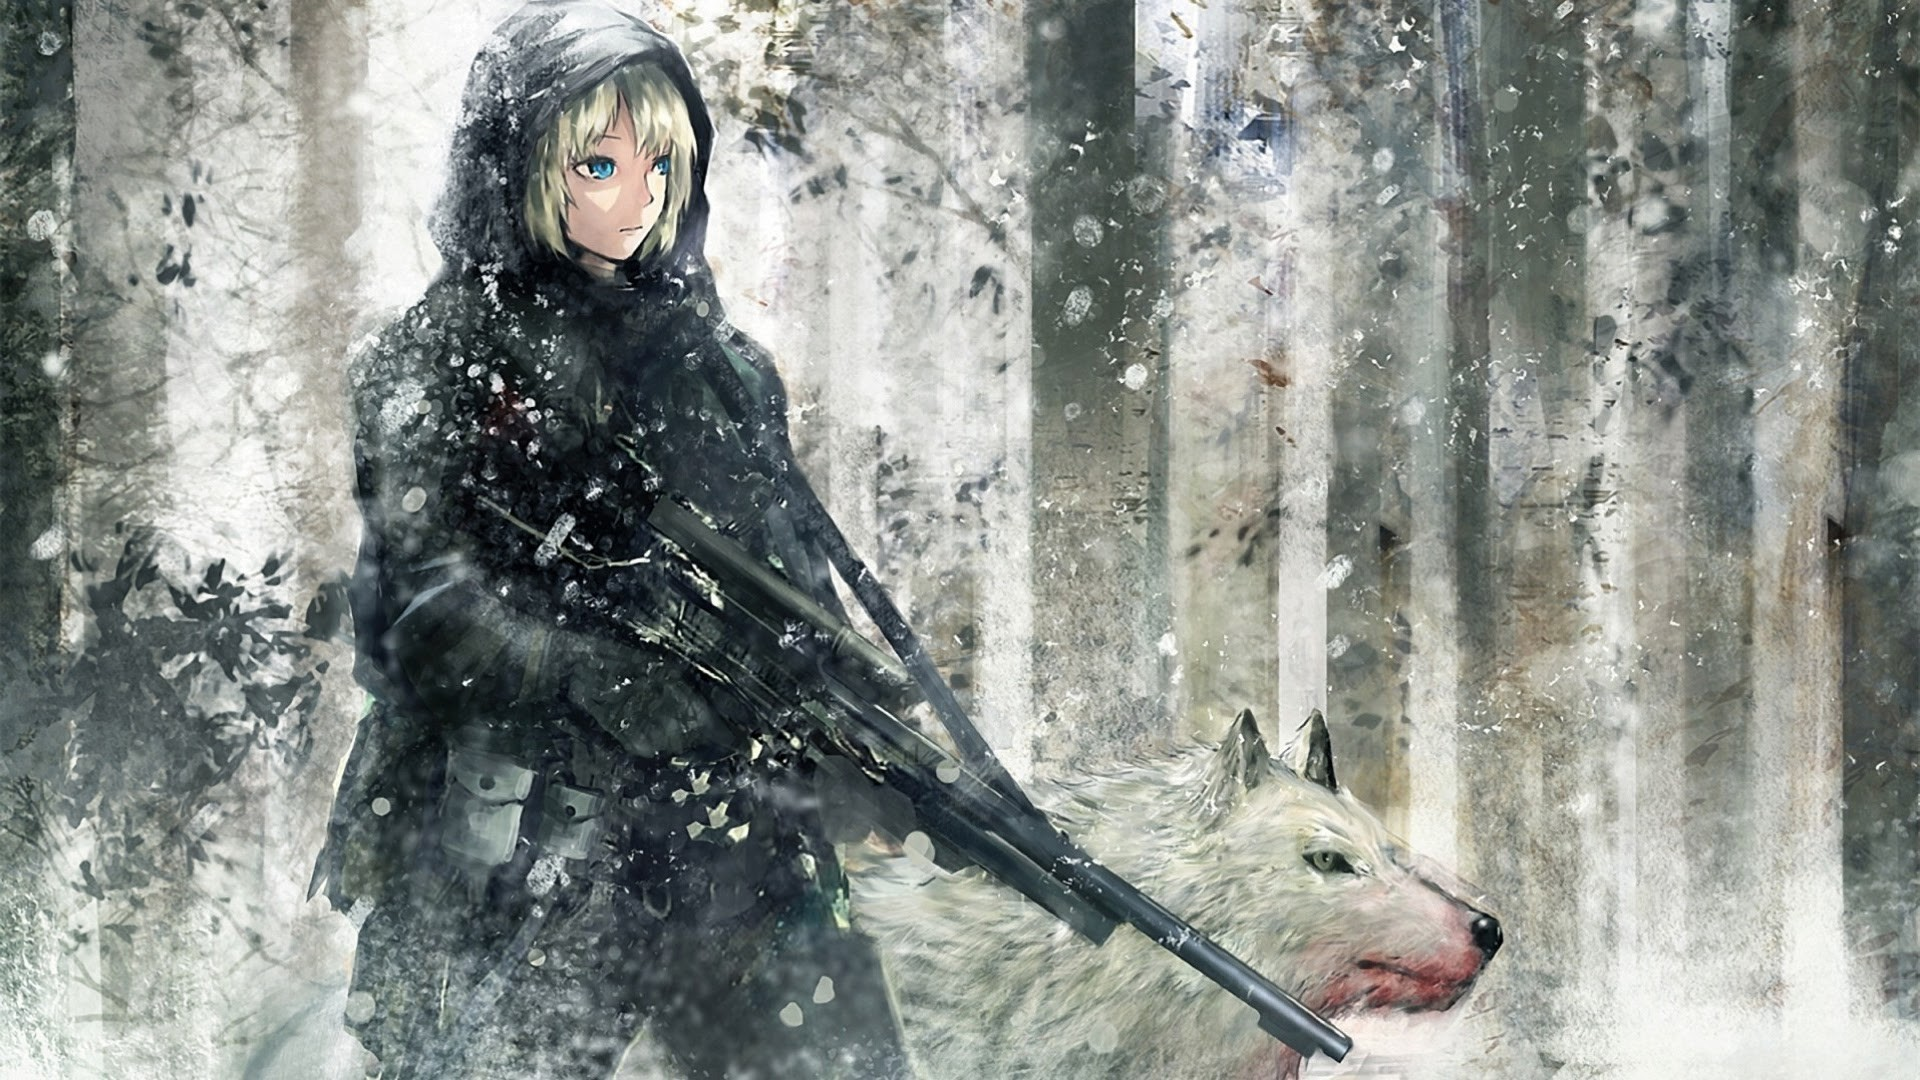 Sniper Anime Girl with Wolves Wallpapers